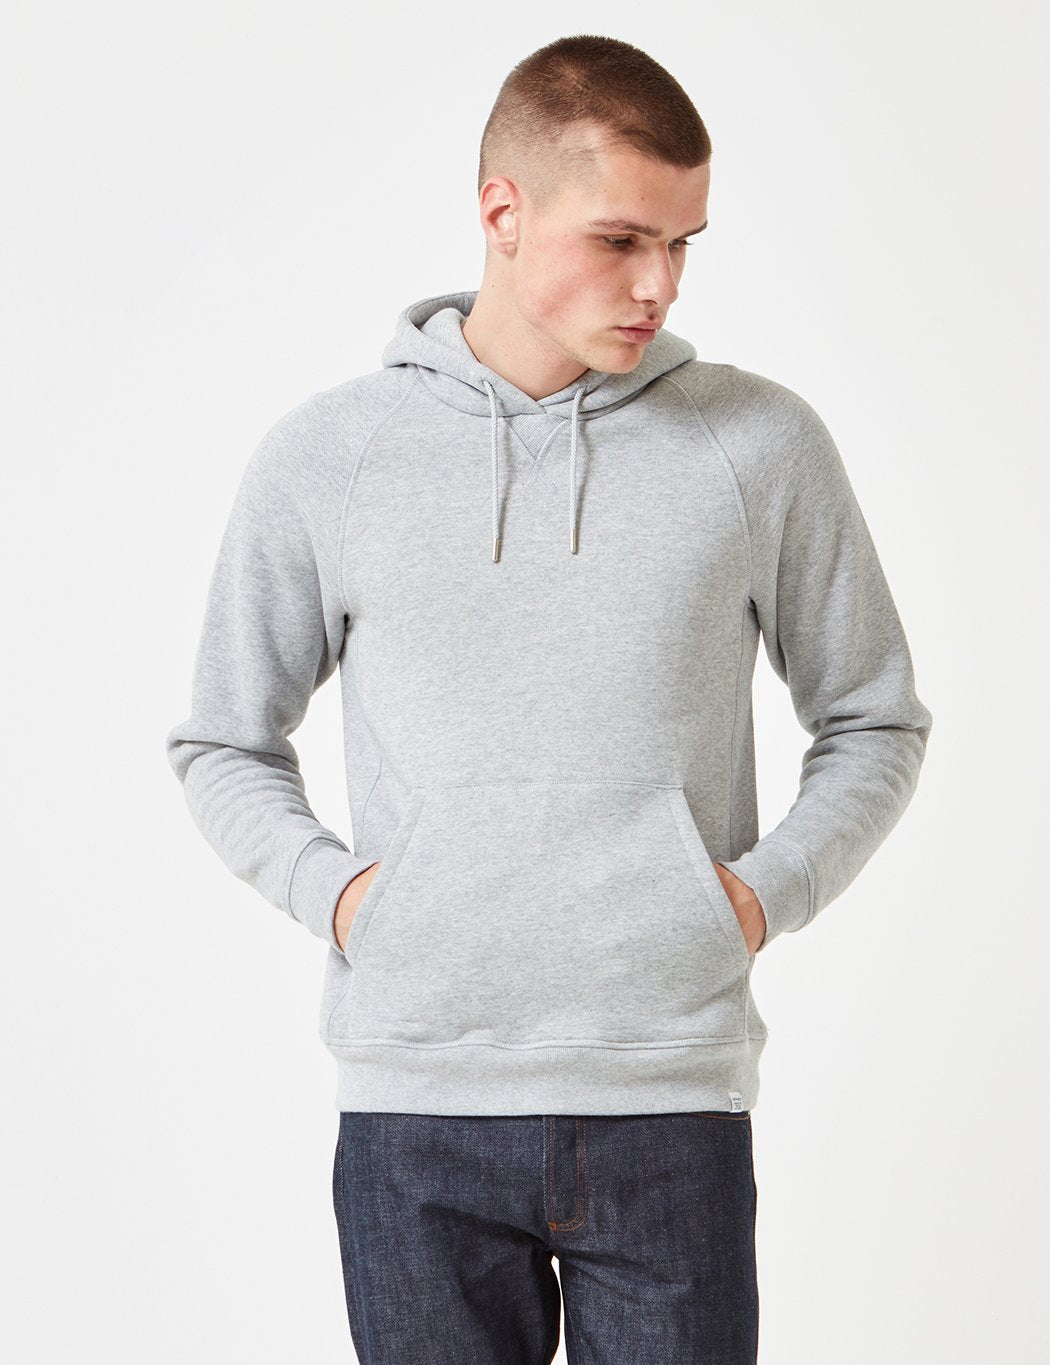 Norse Projects Ketel Hooded Sweatshirt - Light Grey